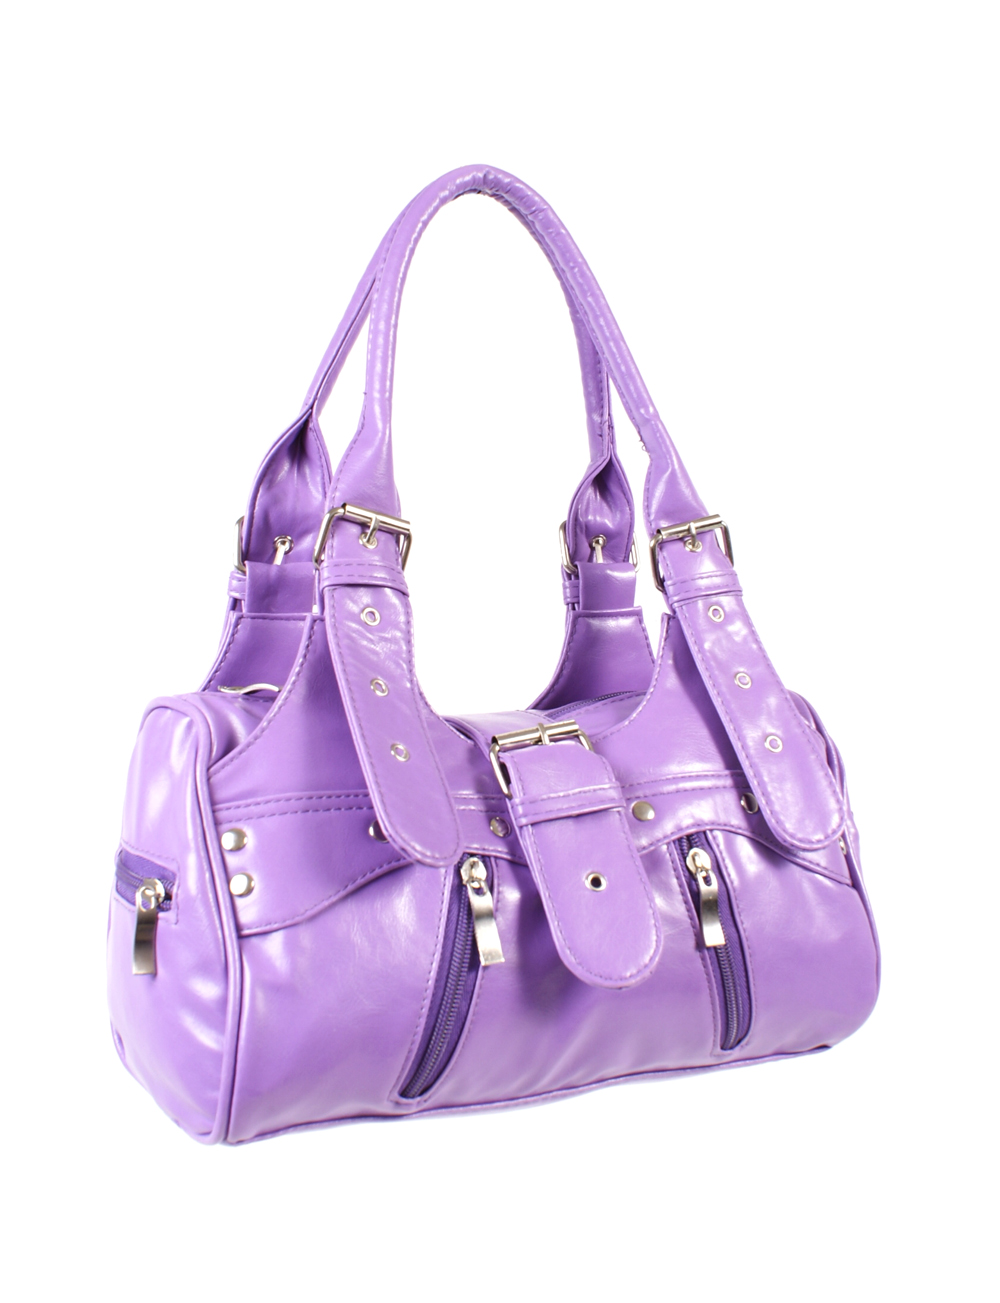 Fashion Bags up to £5.00